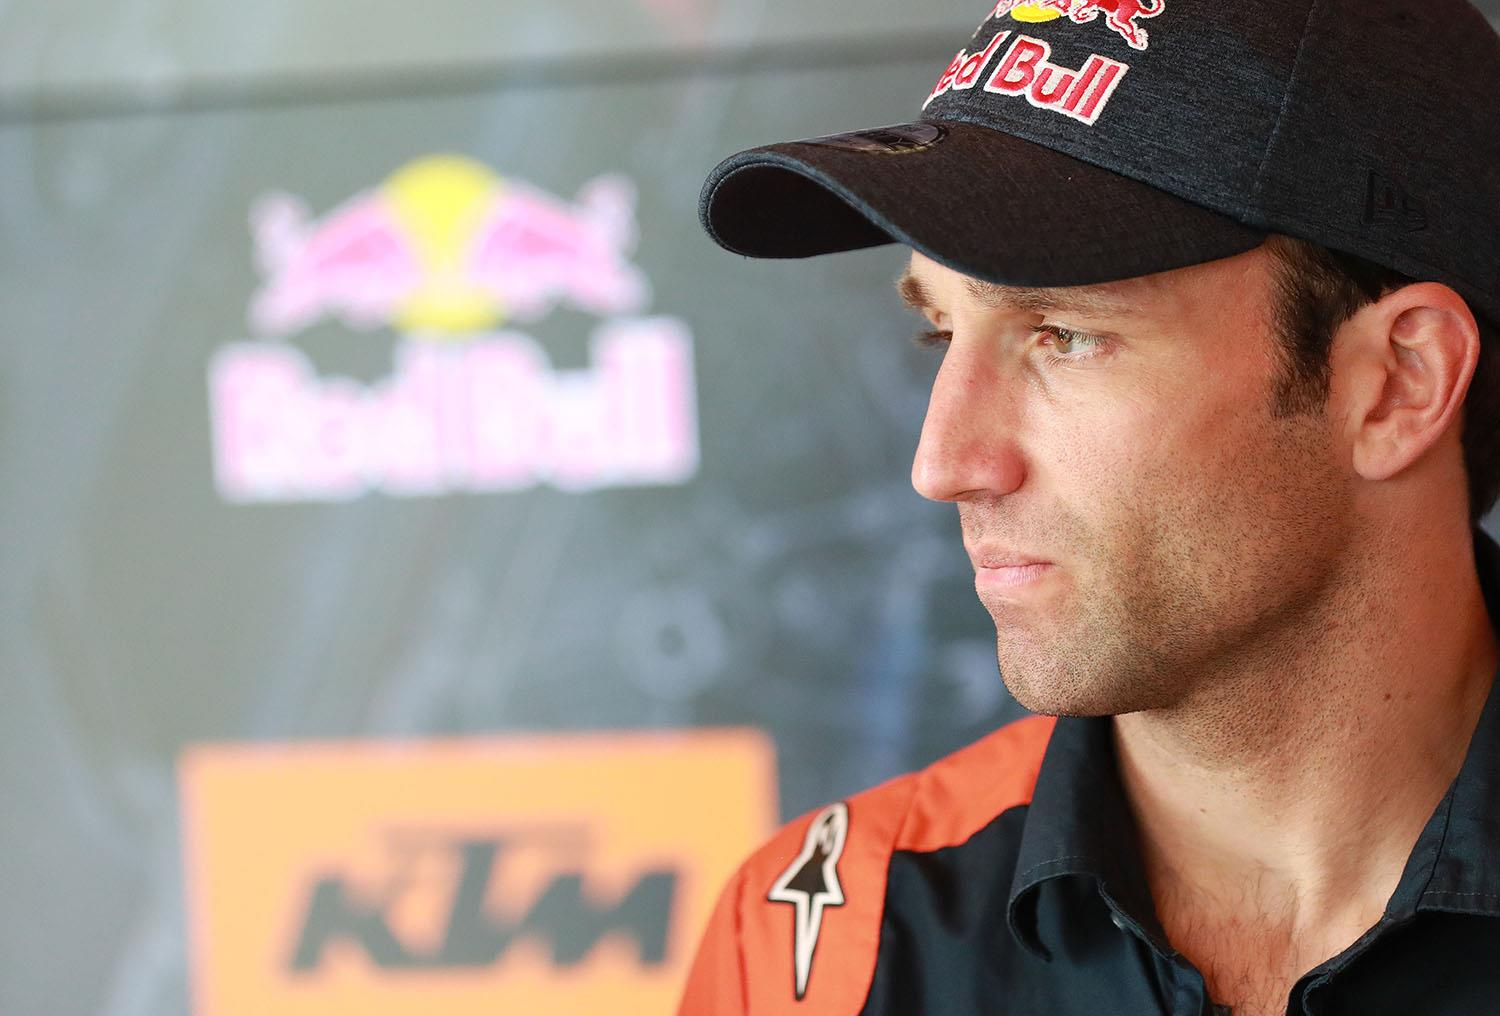 WSB: Honda hunting for Zarco to join in 2020?